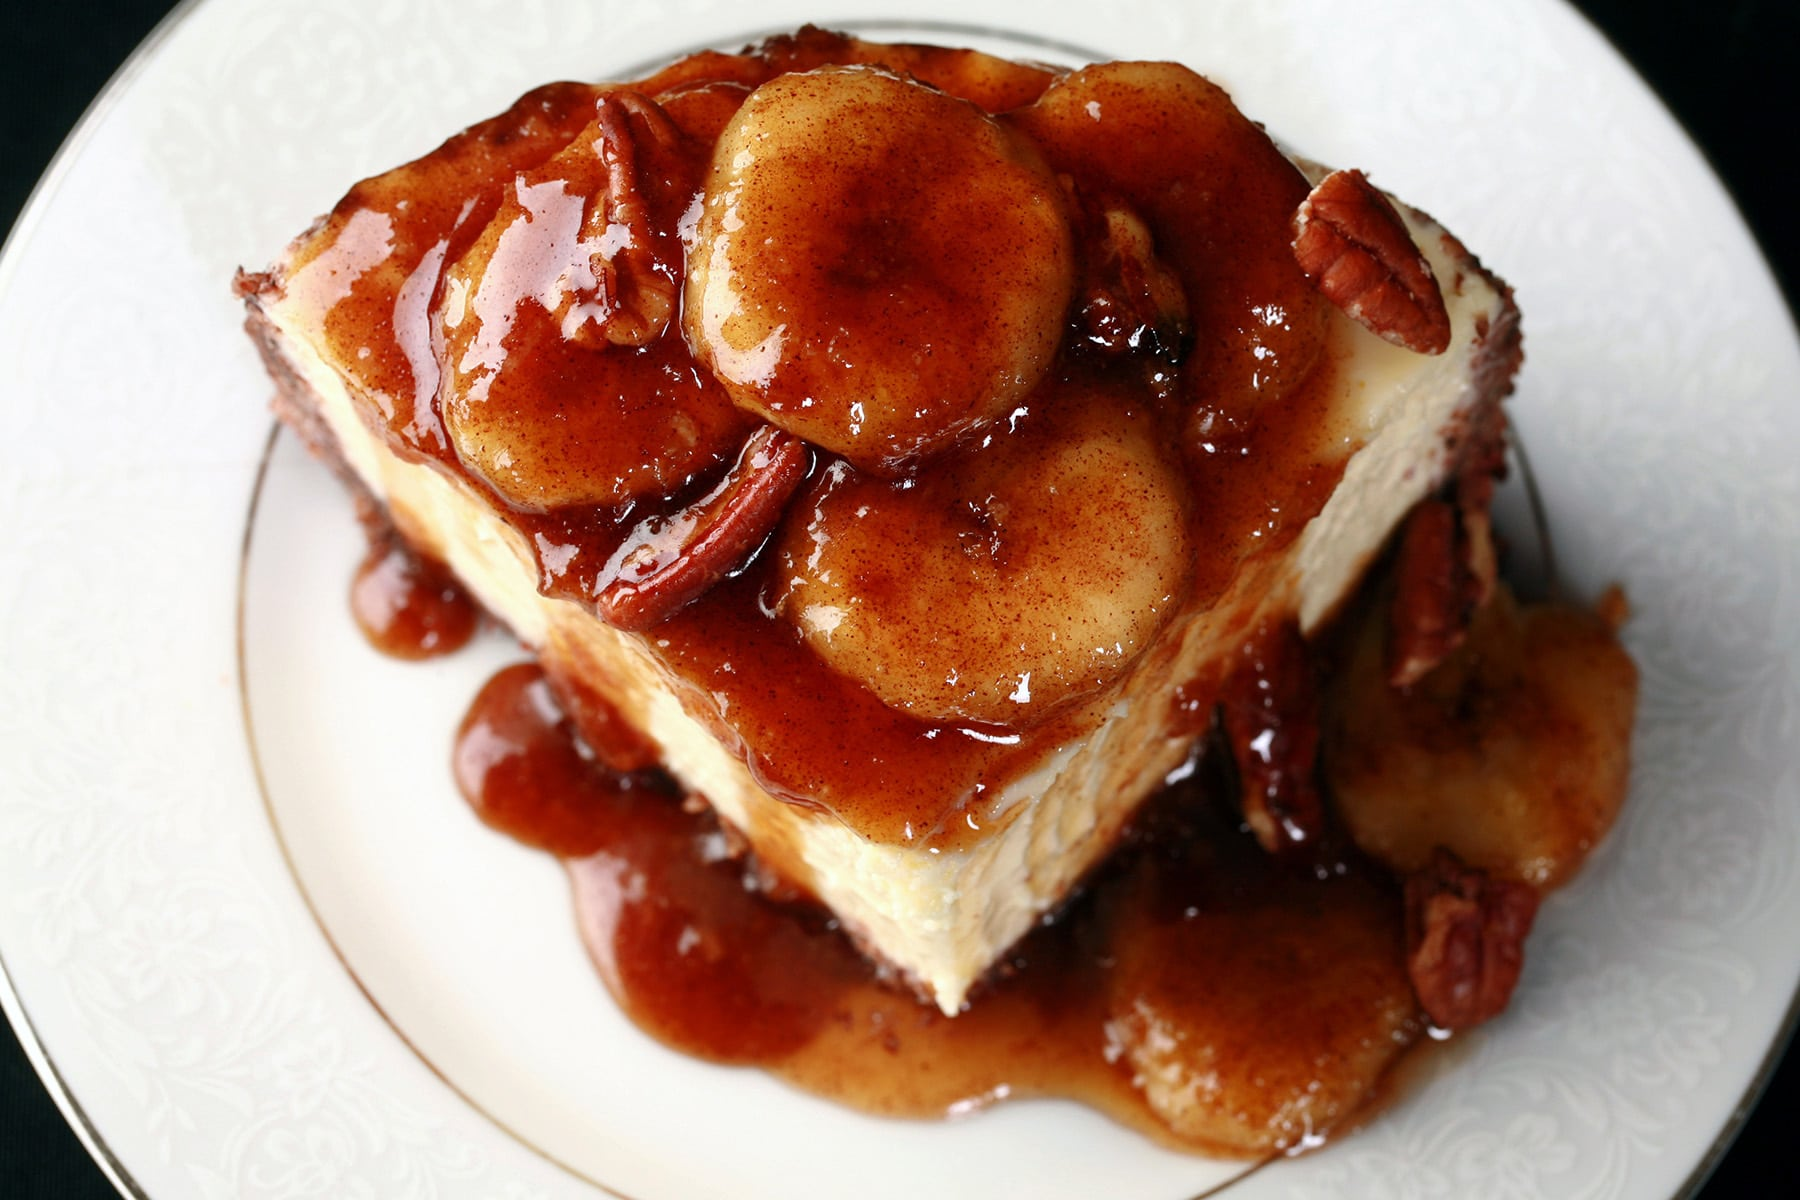 A close up view of a slice of Bananas Foster cheesecake.